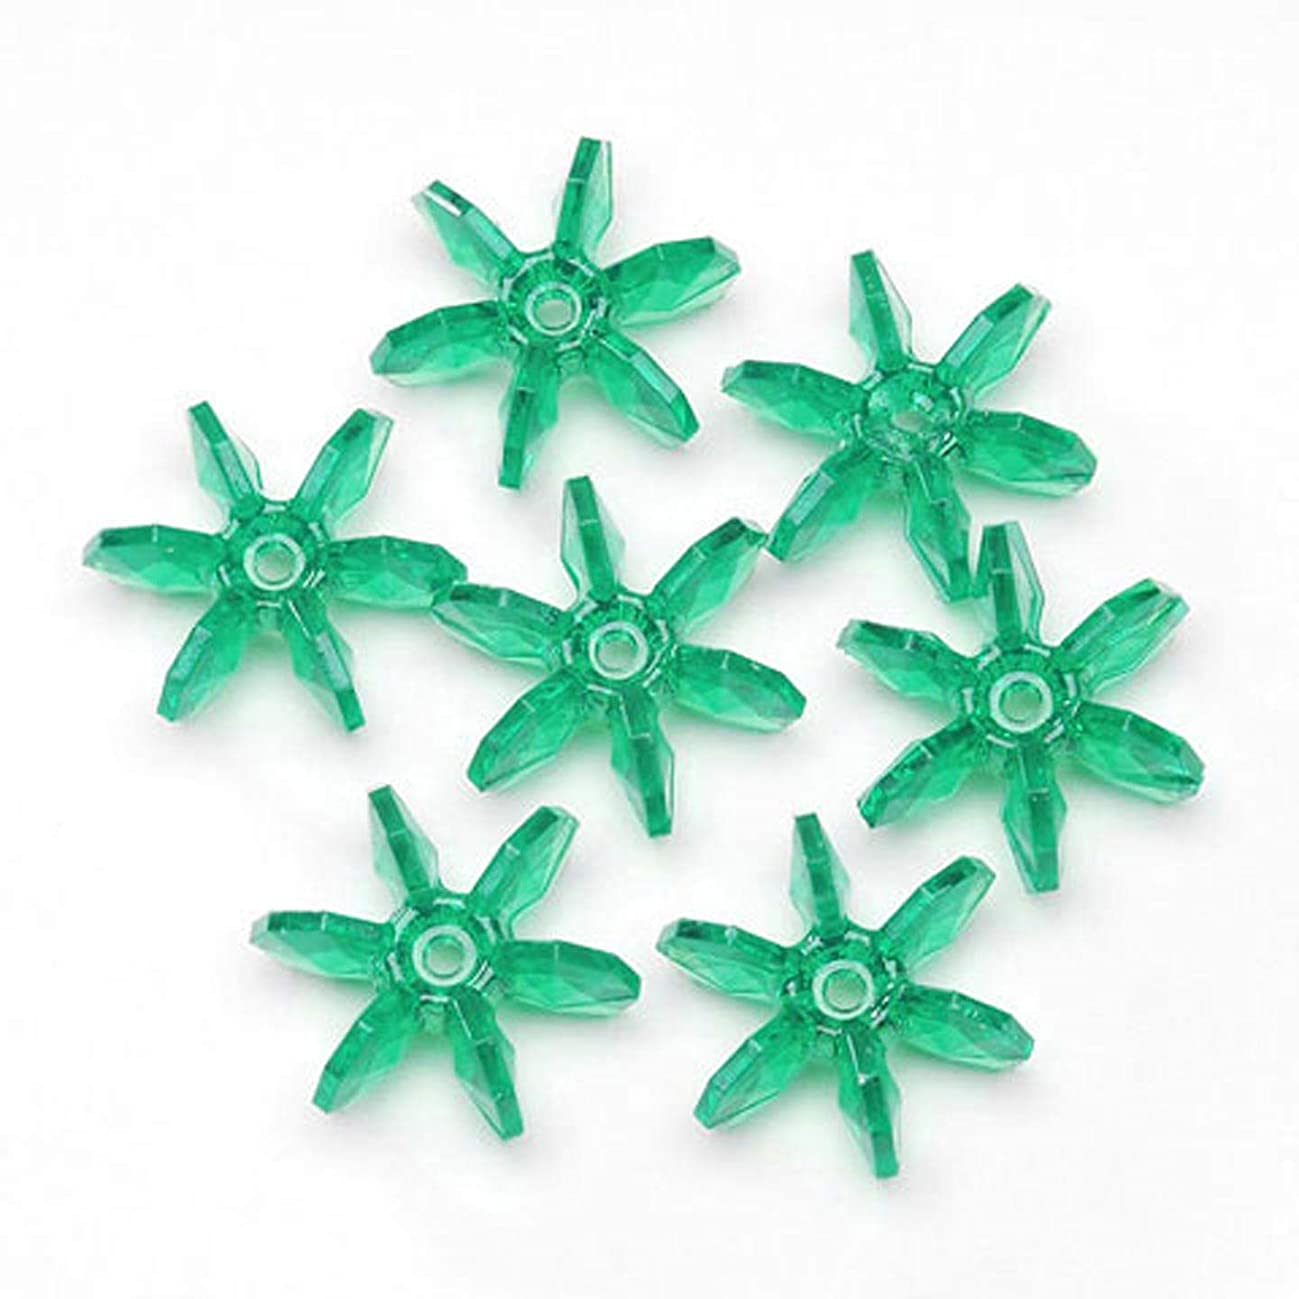 Bulk Buy: Darice DIY Crafts Starflake Beads Transparent Christmas Green 10mm 1000 pieces (1-Pack) 06507-7-T12